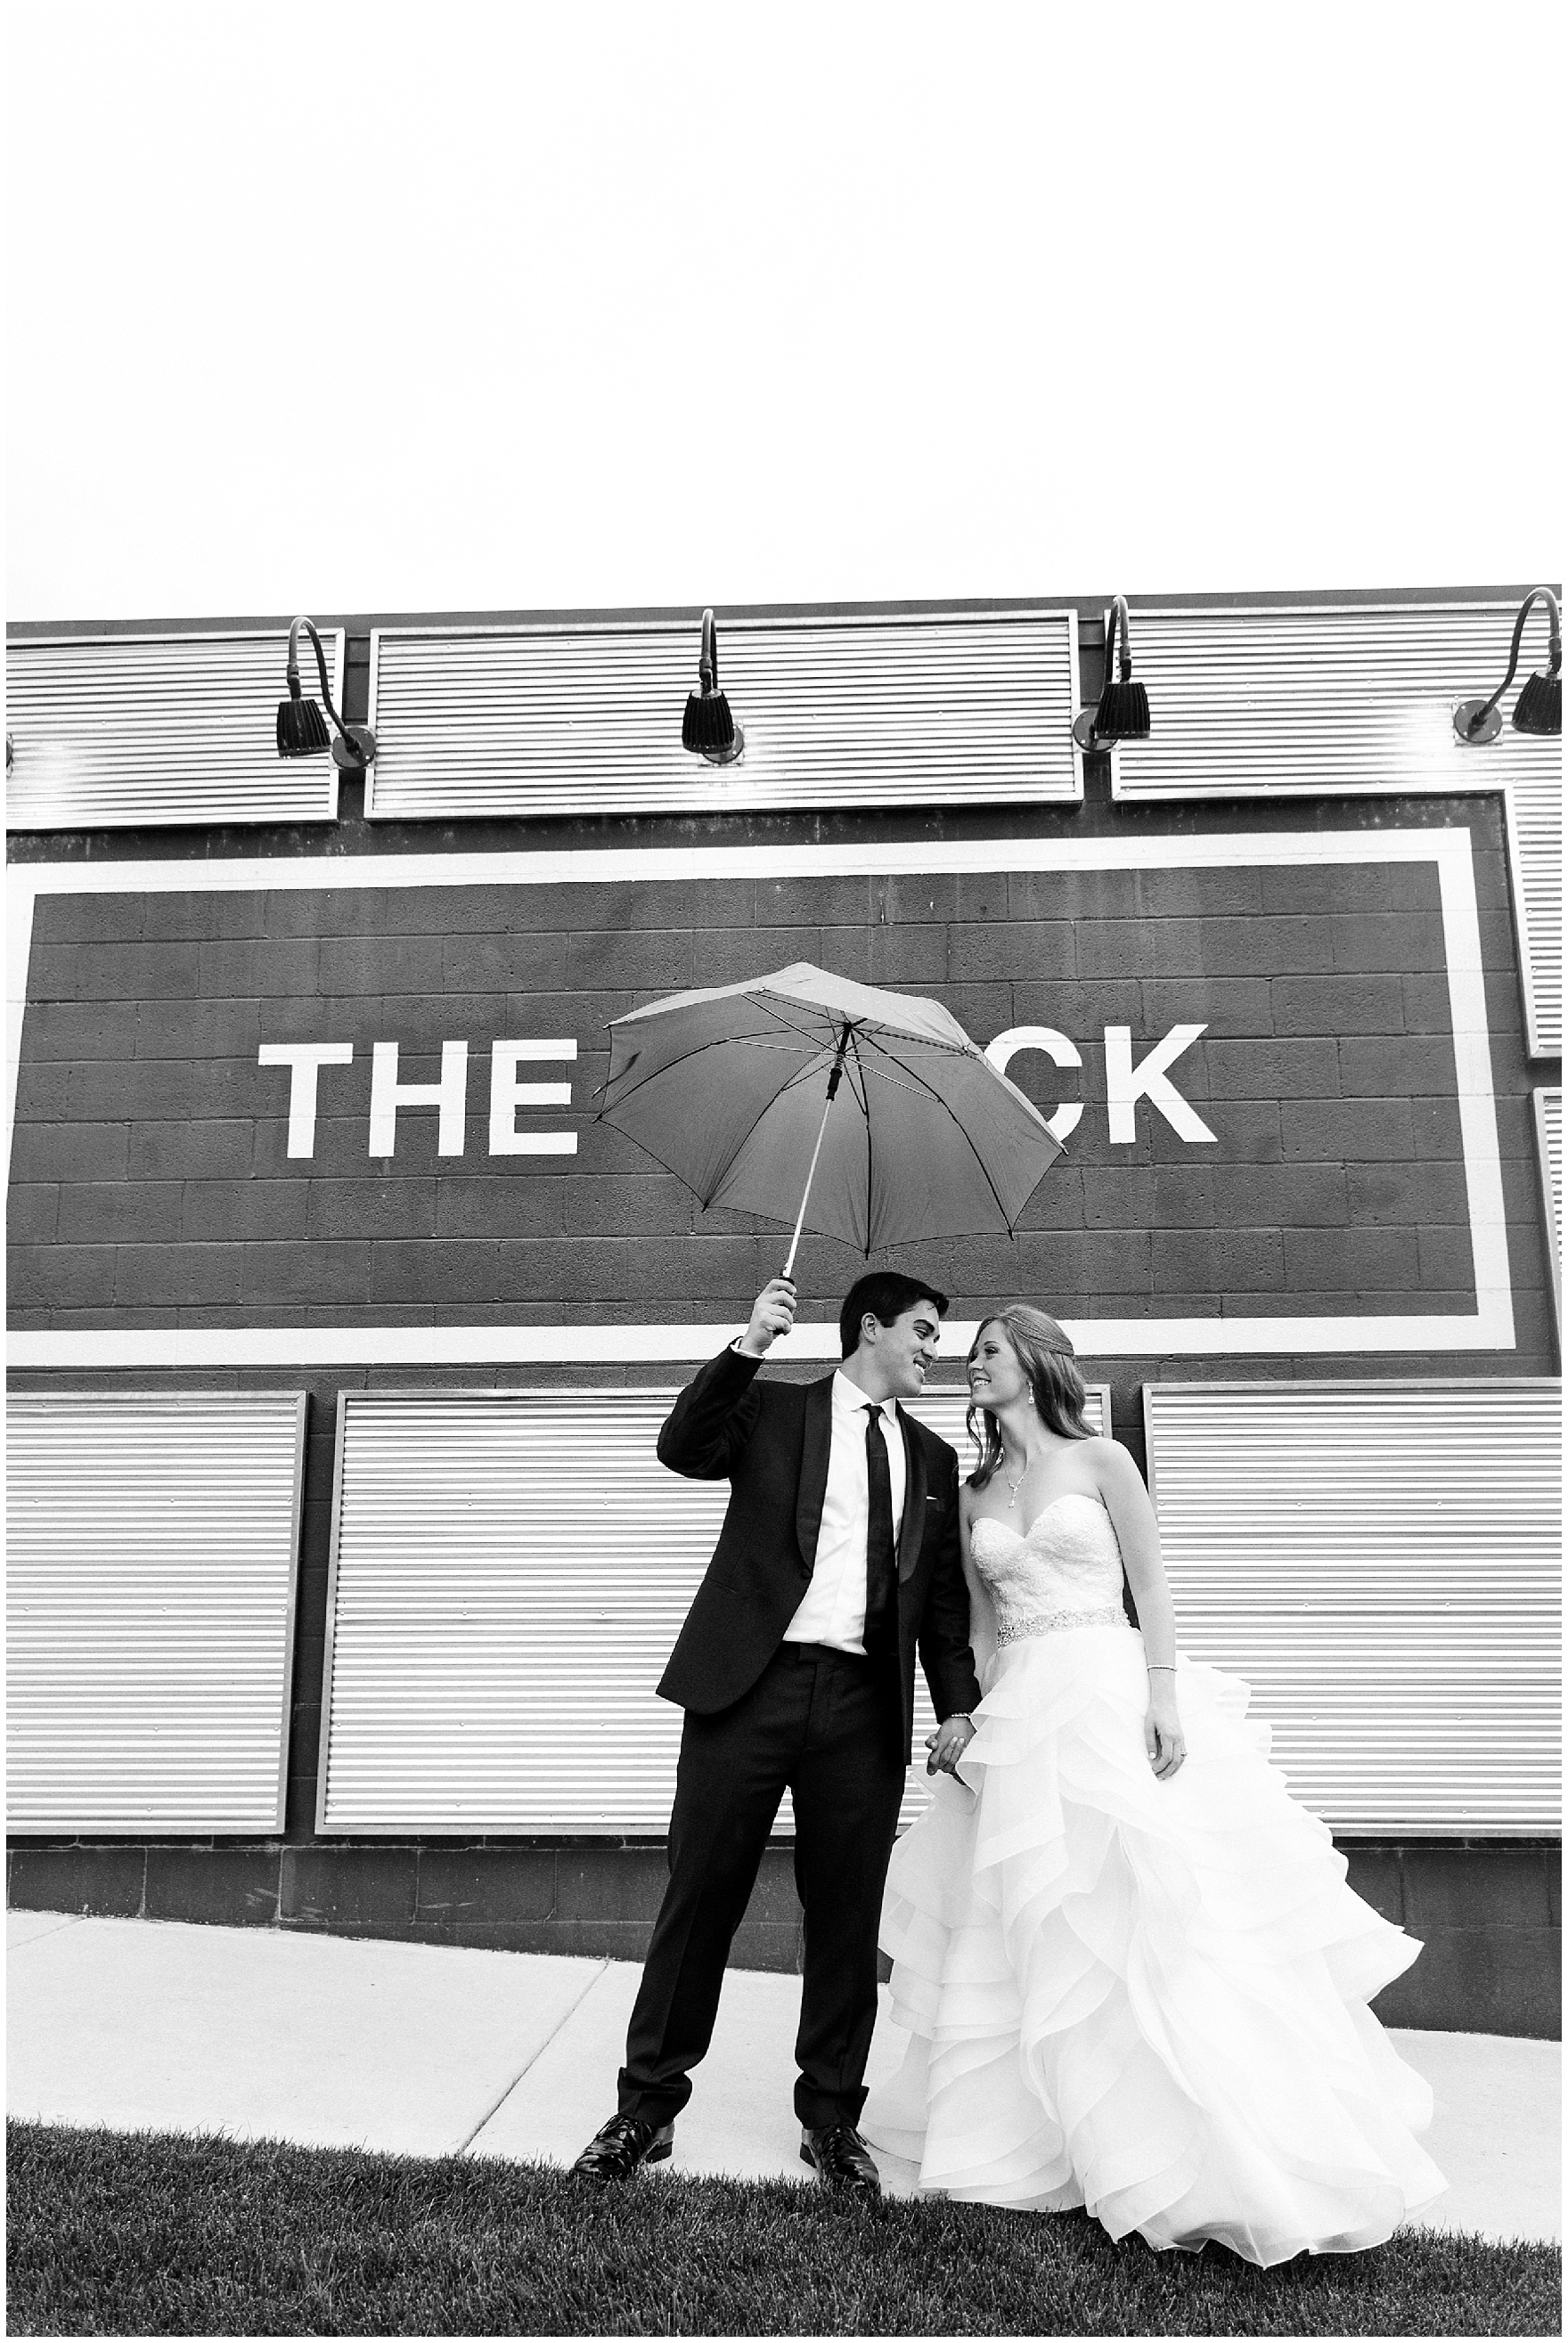 The bride and groom pose in front of The Brick in South Bend, site of their reception following a University of Notre Dame wedding.